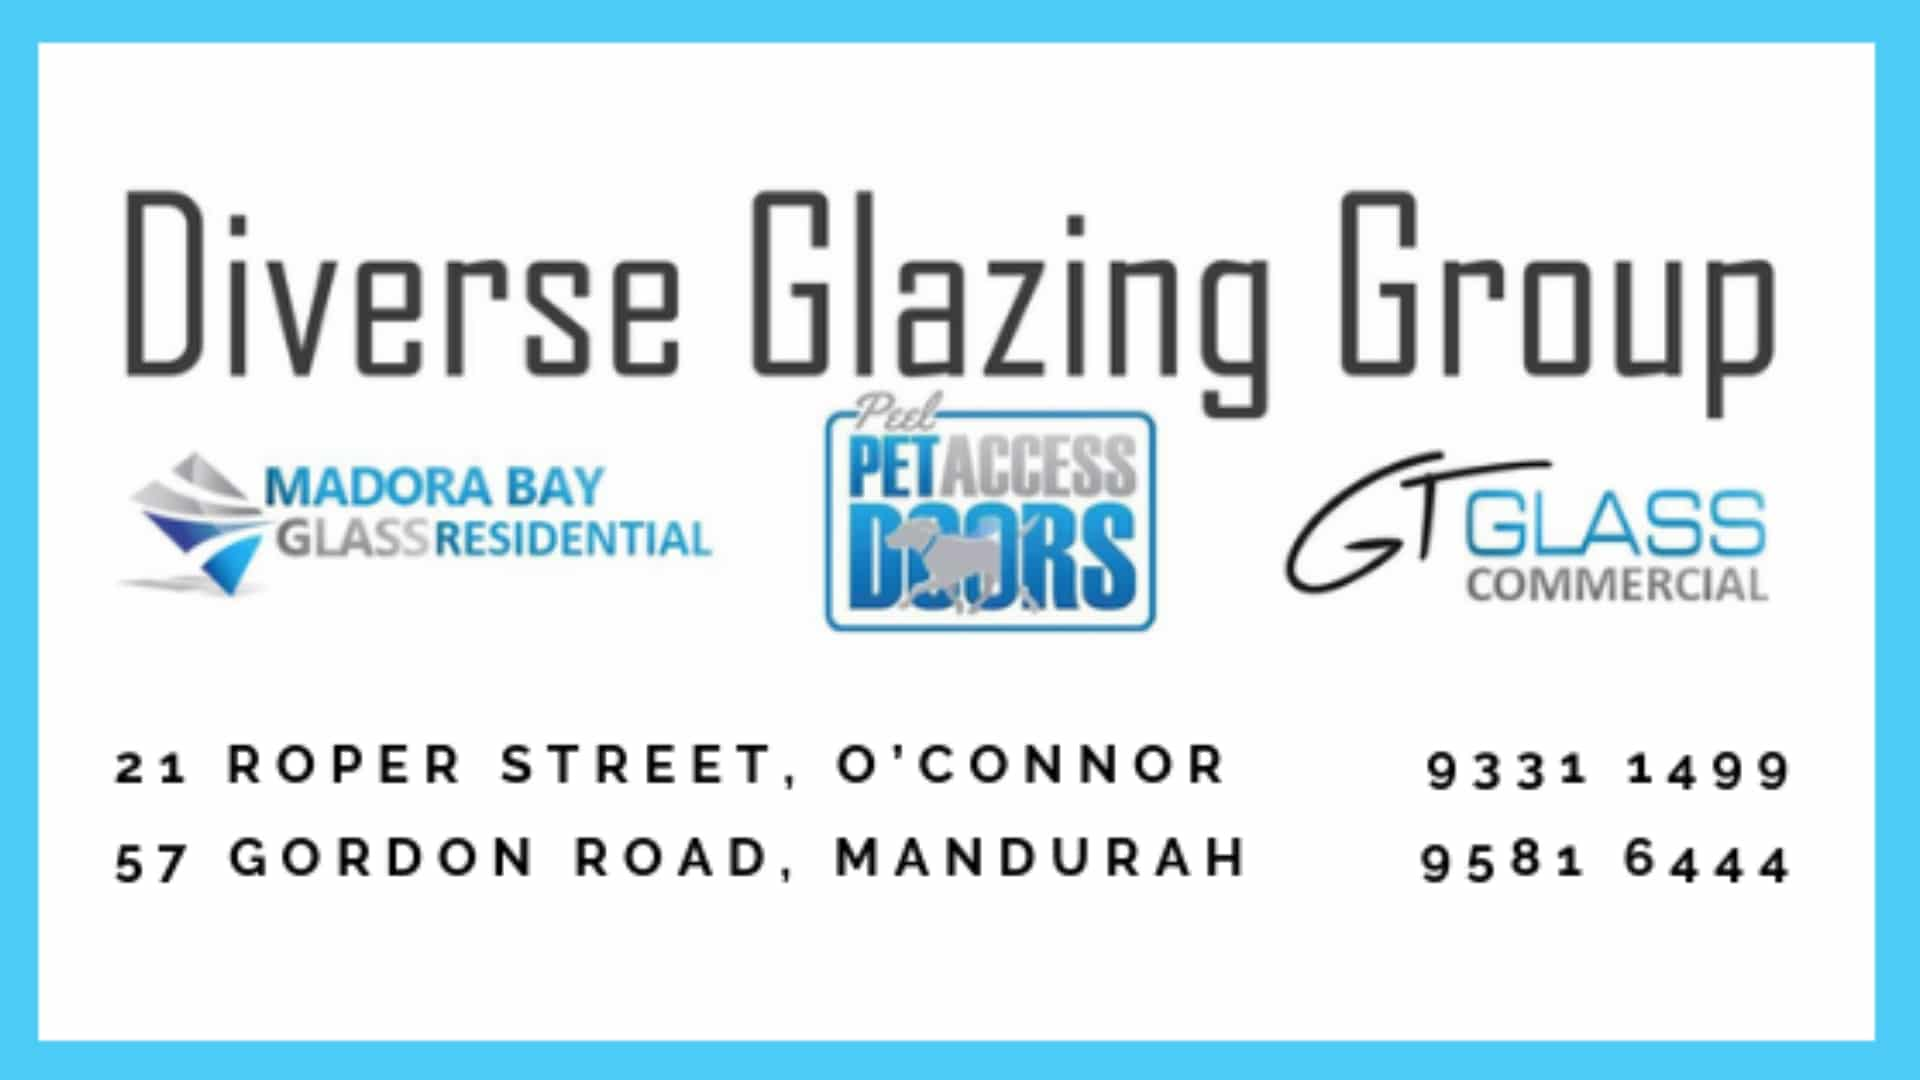 Glass Cut To Size Perth How Much Does A Splashback Cost Diverse Glazing Group